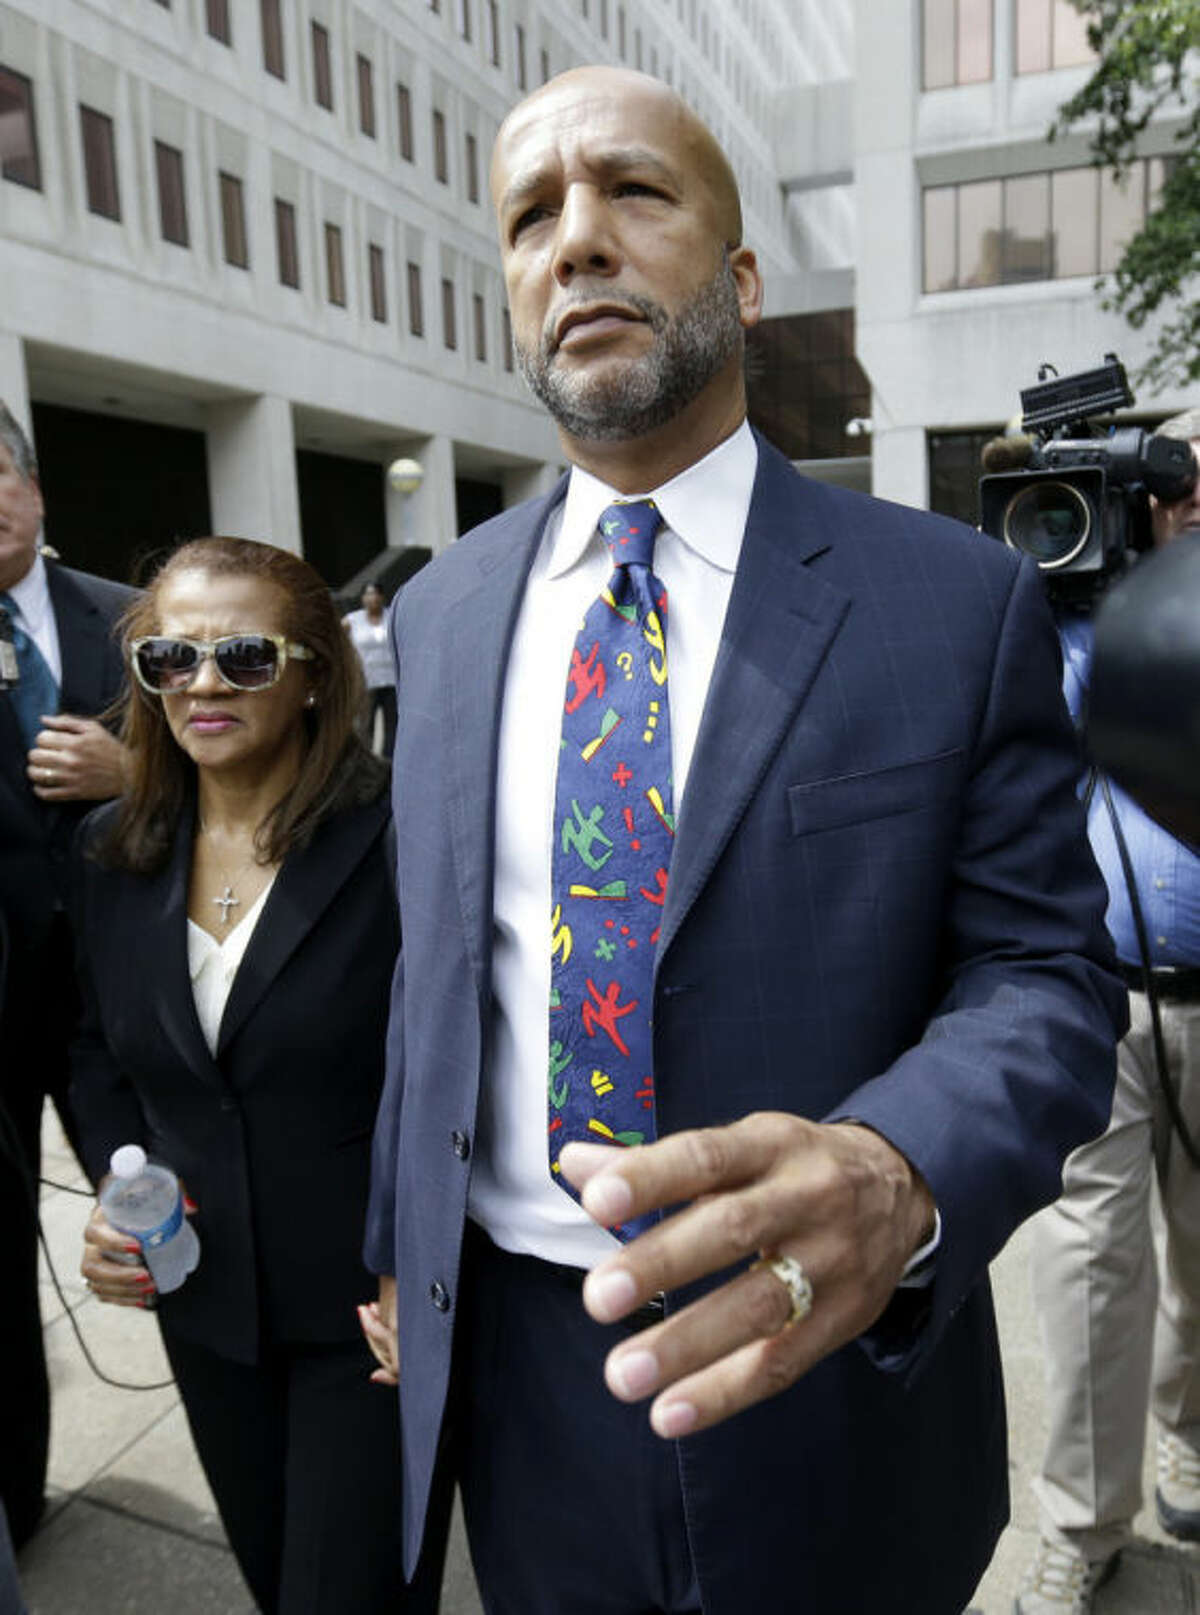 Former New Orleans Mayor Ray Nagin leaves federal court after being sentenced in New Orleans, Wednesday, July 9, 2014. Nagin was sentenced to 10 years in prison for bribery, money laundering and other corruption that spanned his two terms as mayor, including the chaotic years after Hurricane Katrina hit in 2005. He was convicted Feb. 12 of accepting hundreds of thousands of dollars from businessmen who wanted work from the city or Nagin's support for various projects. The bribes came in the form of money, free vacations and truckloads of free granite for his family business. (AP Photo/Gerald Herbert)